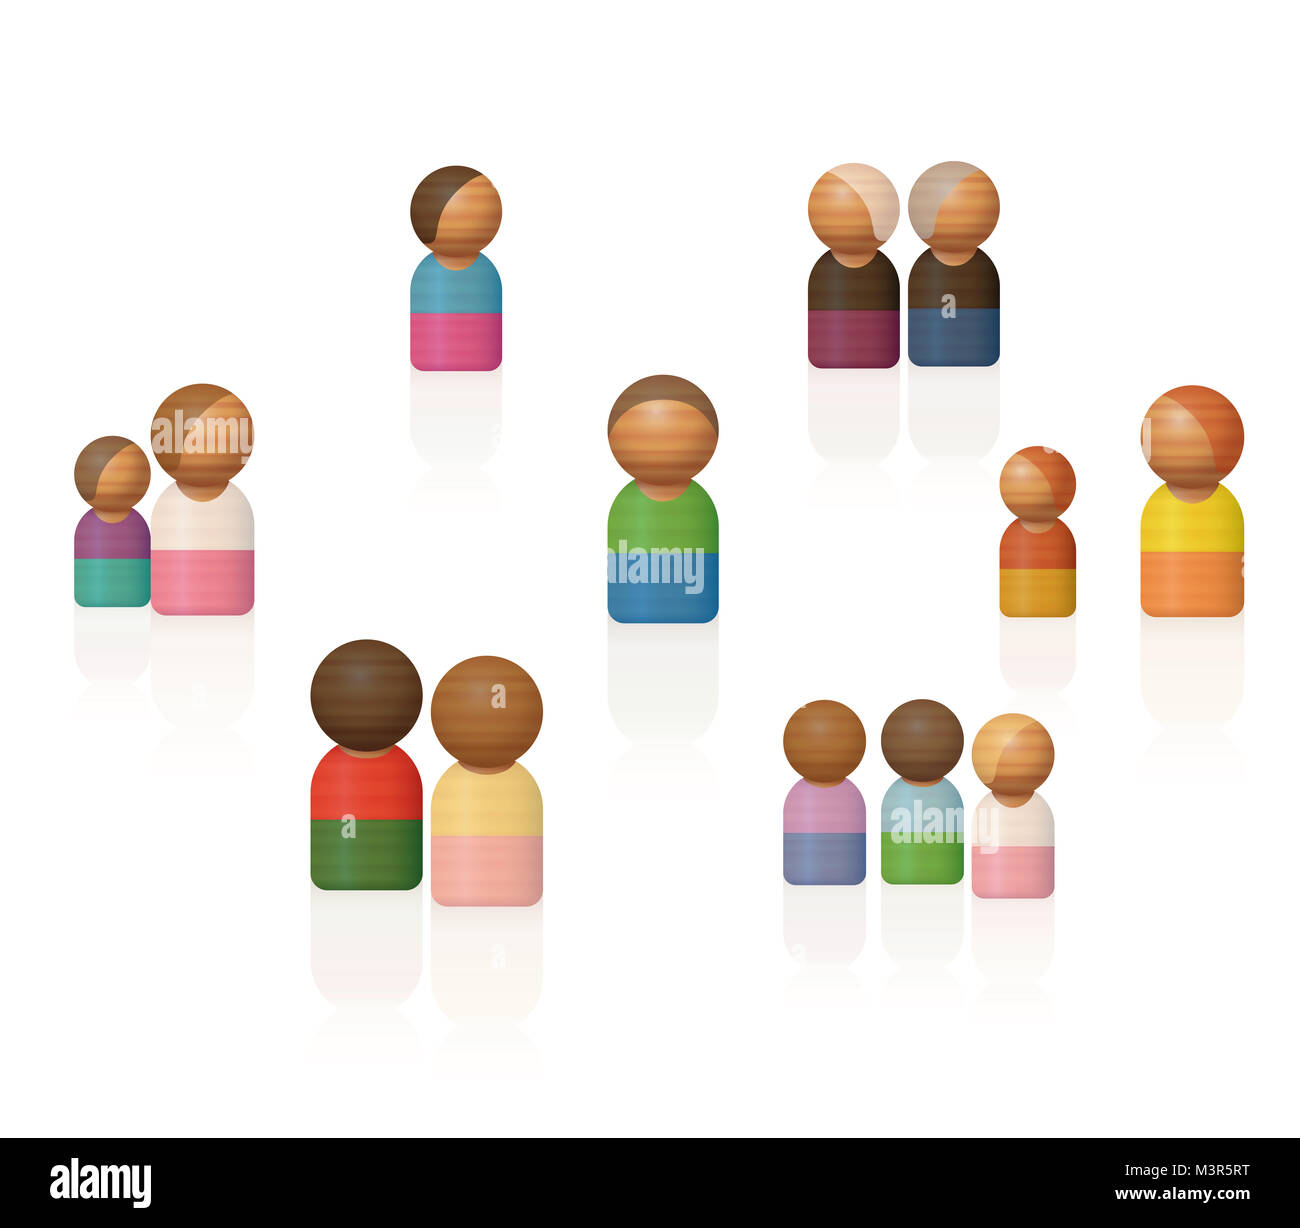 Family constellations. Therapeutic wooden toy figures representing relatives, friends and other contacts. To be - Stock Image